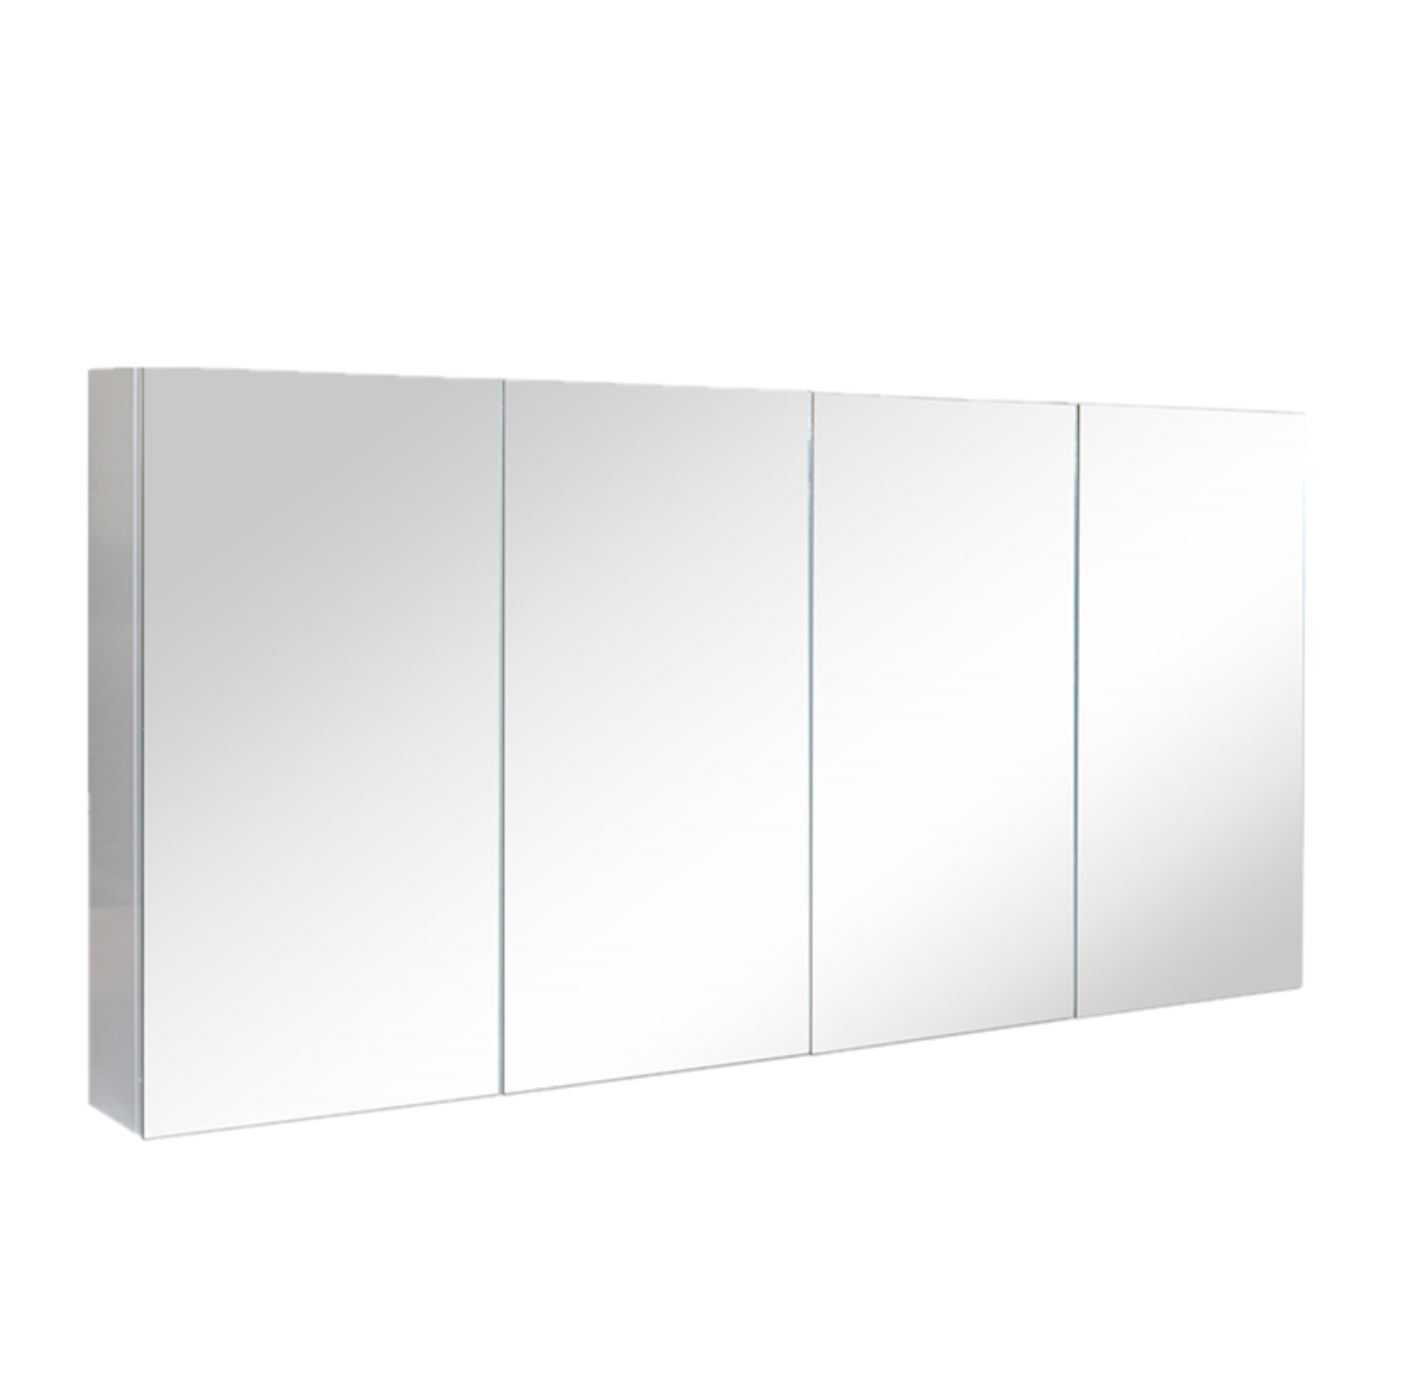 1500mm PVC Shaving Cabinet with Pencil Edge (750mm height)